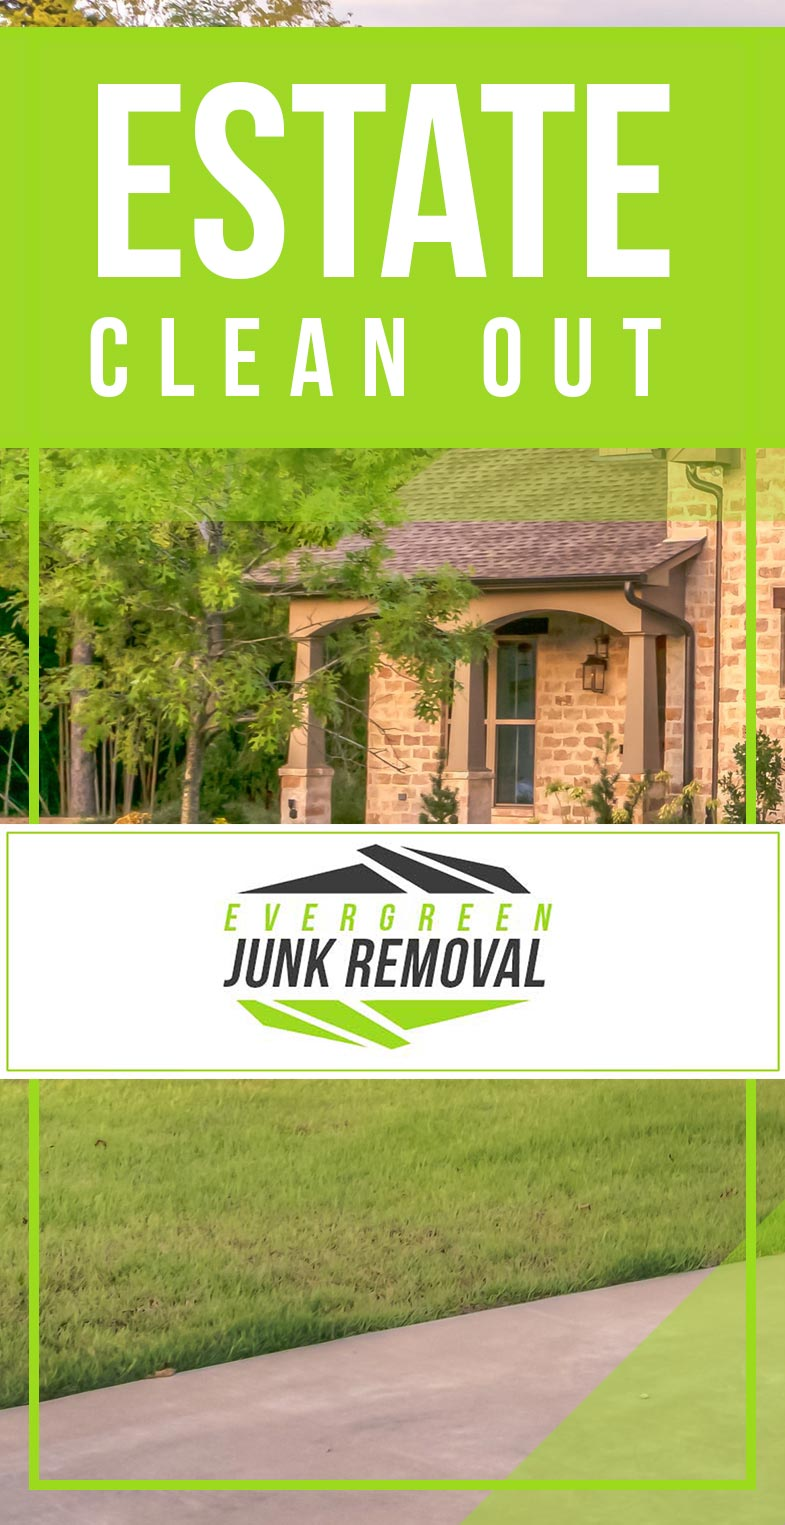 Missouri City TX Property Clean Out